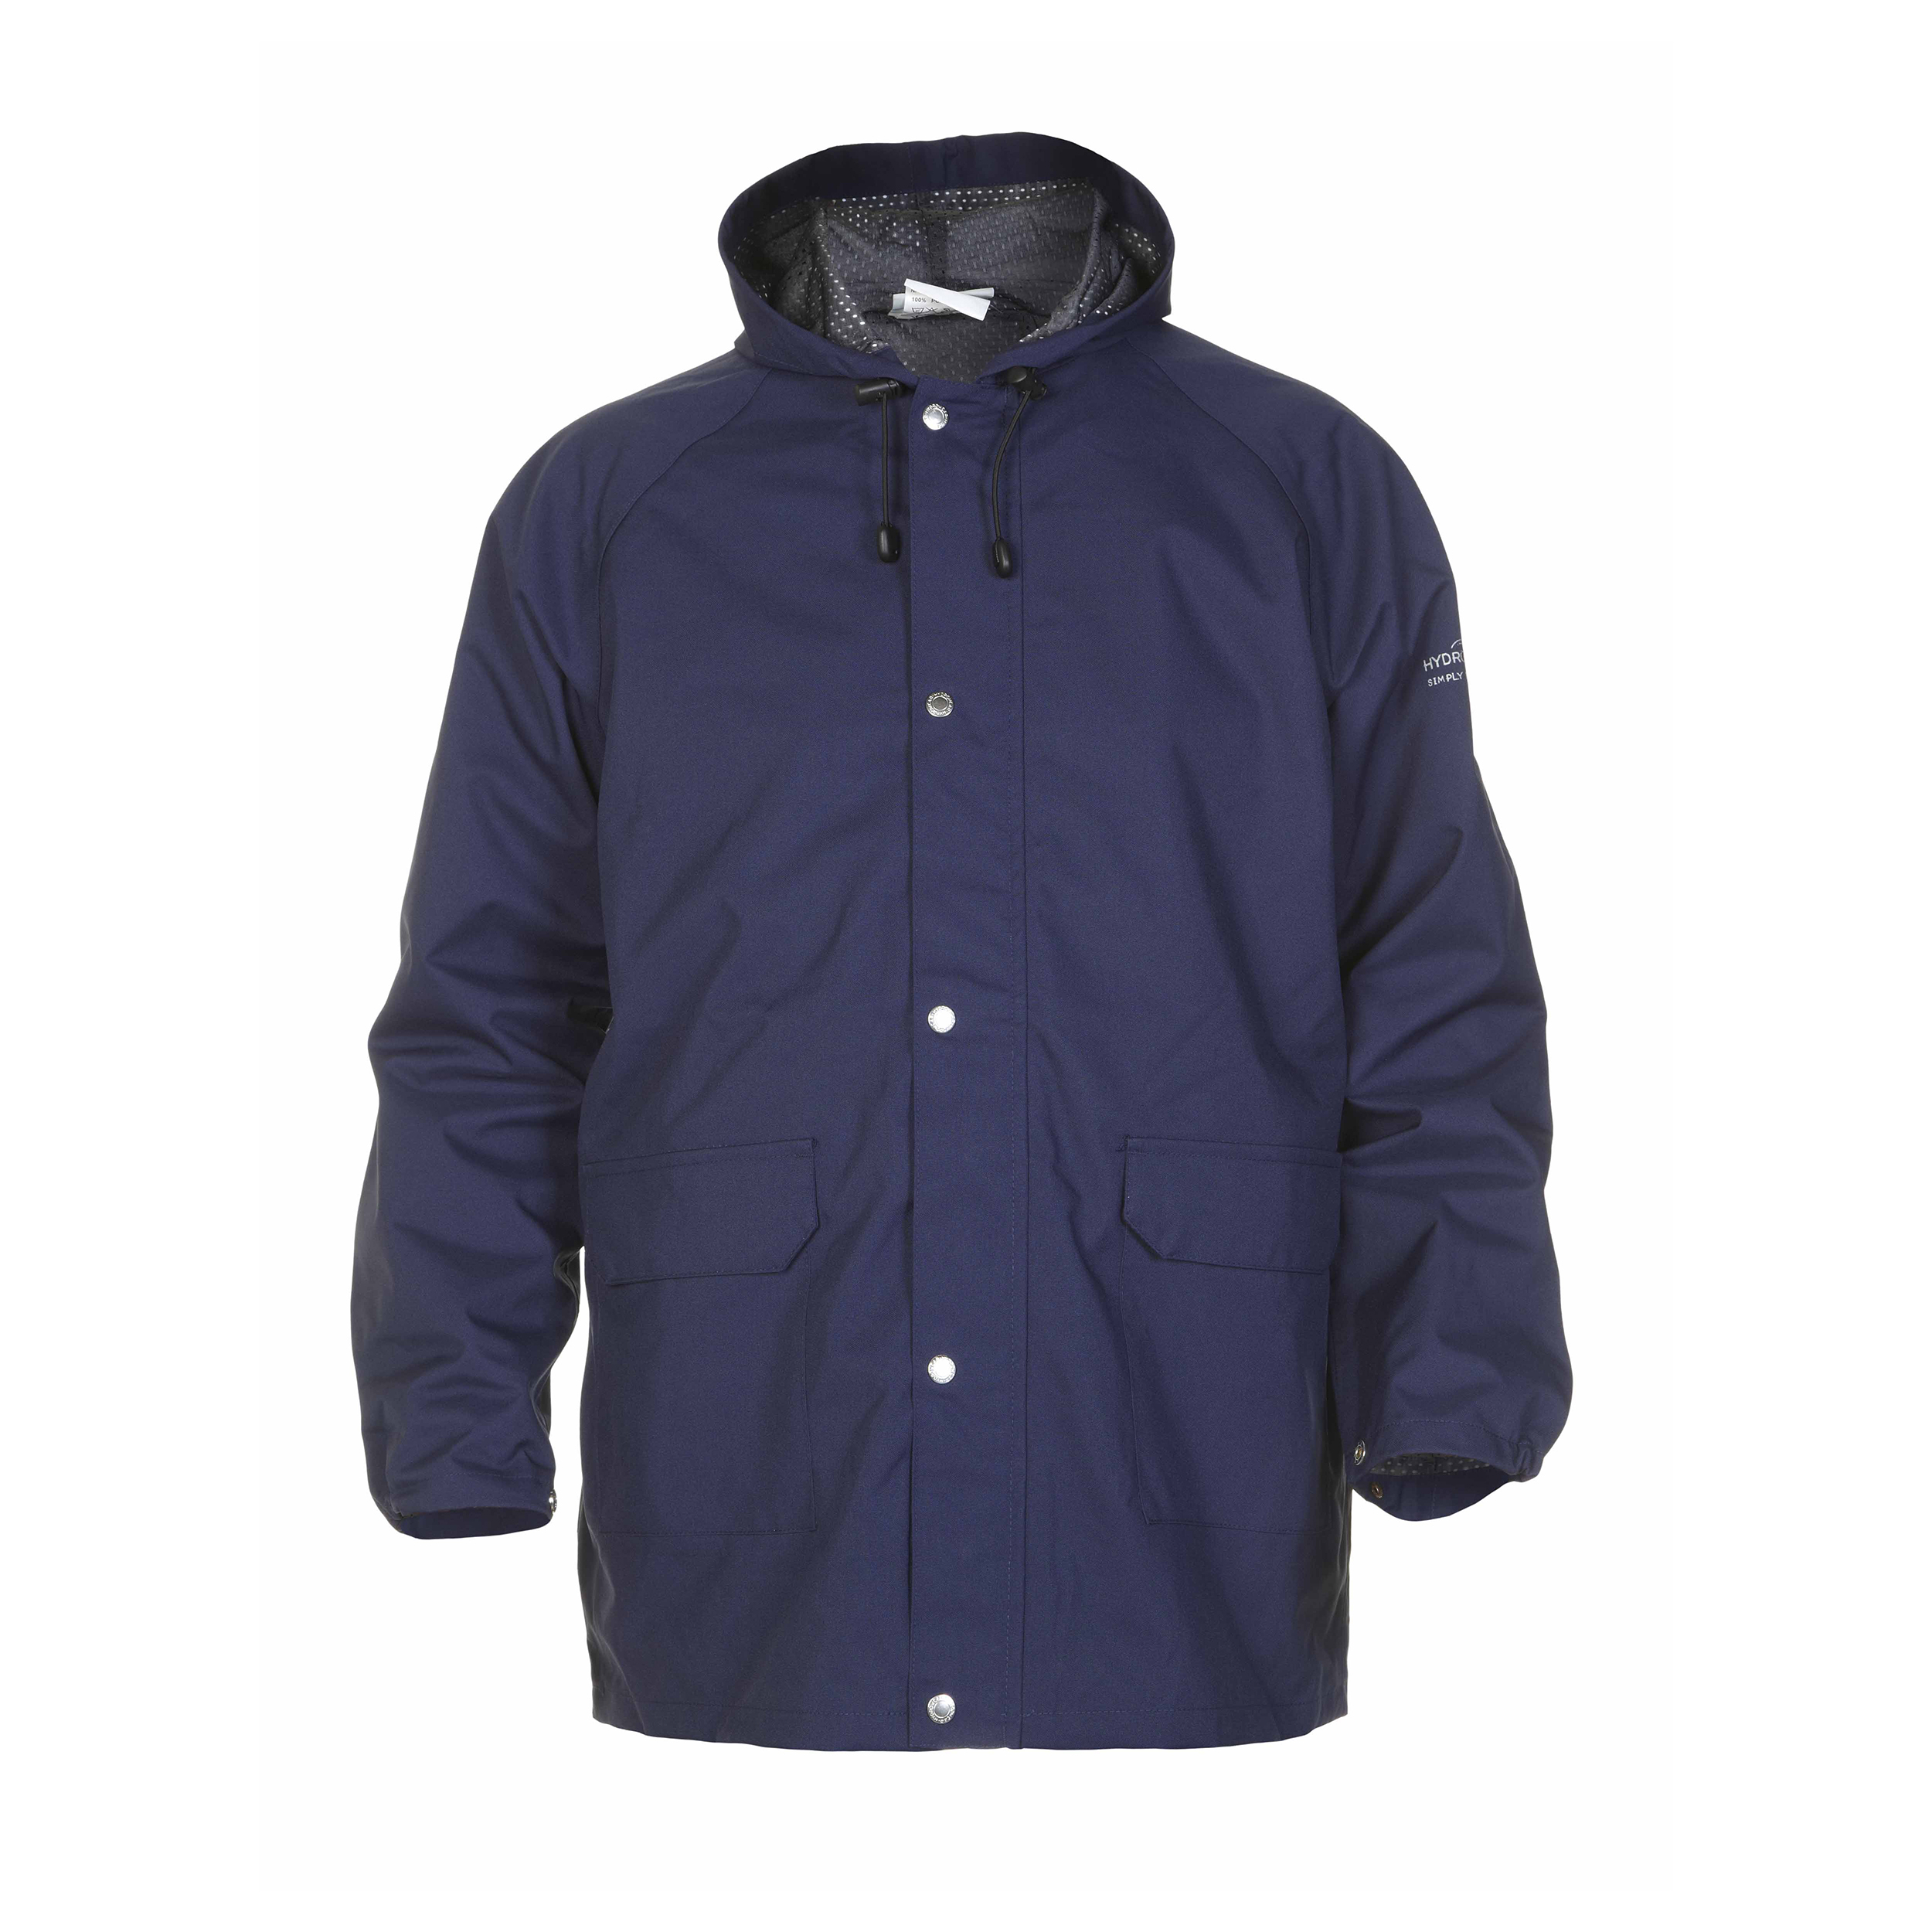 Mens coats or jackets Hydrowear Ulft SNS Waterproof Jacket Polyester 4X Large Navy Blue Ref HYD072400N4XL *Upto 3 Day Leadtime*